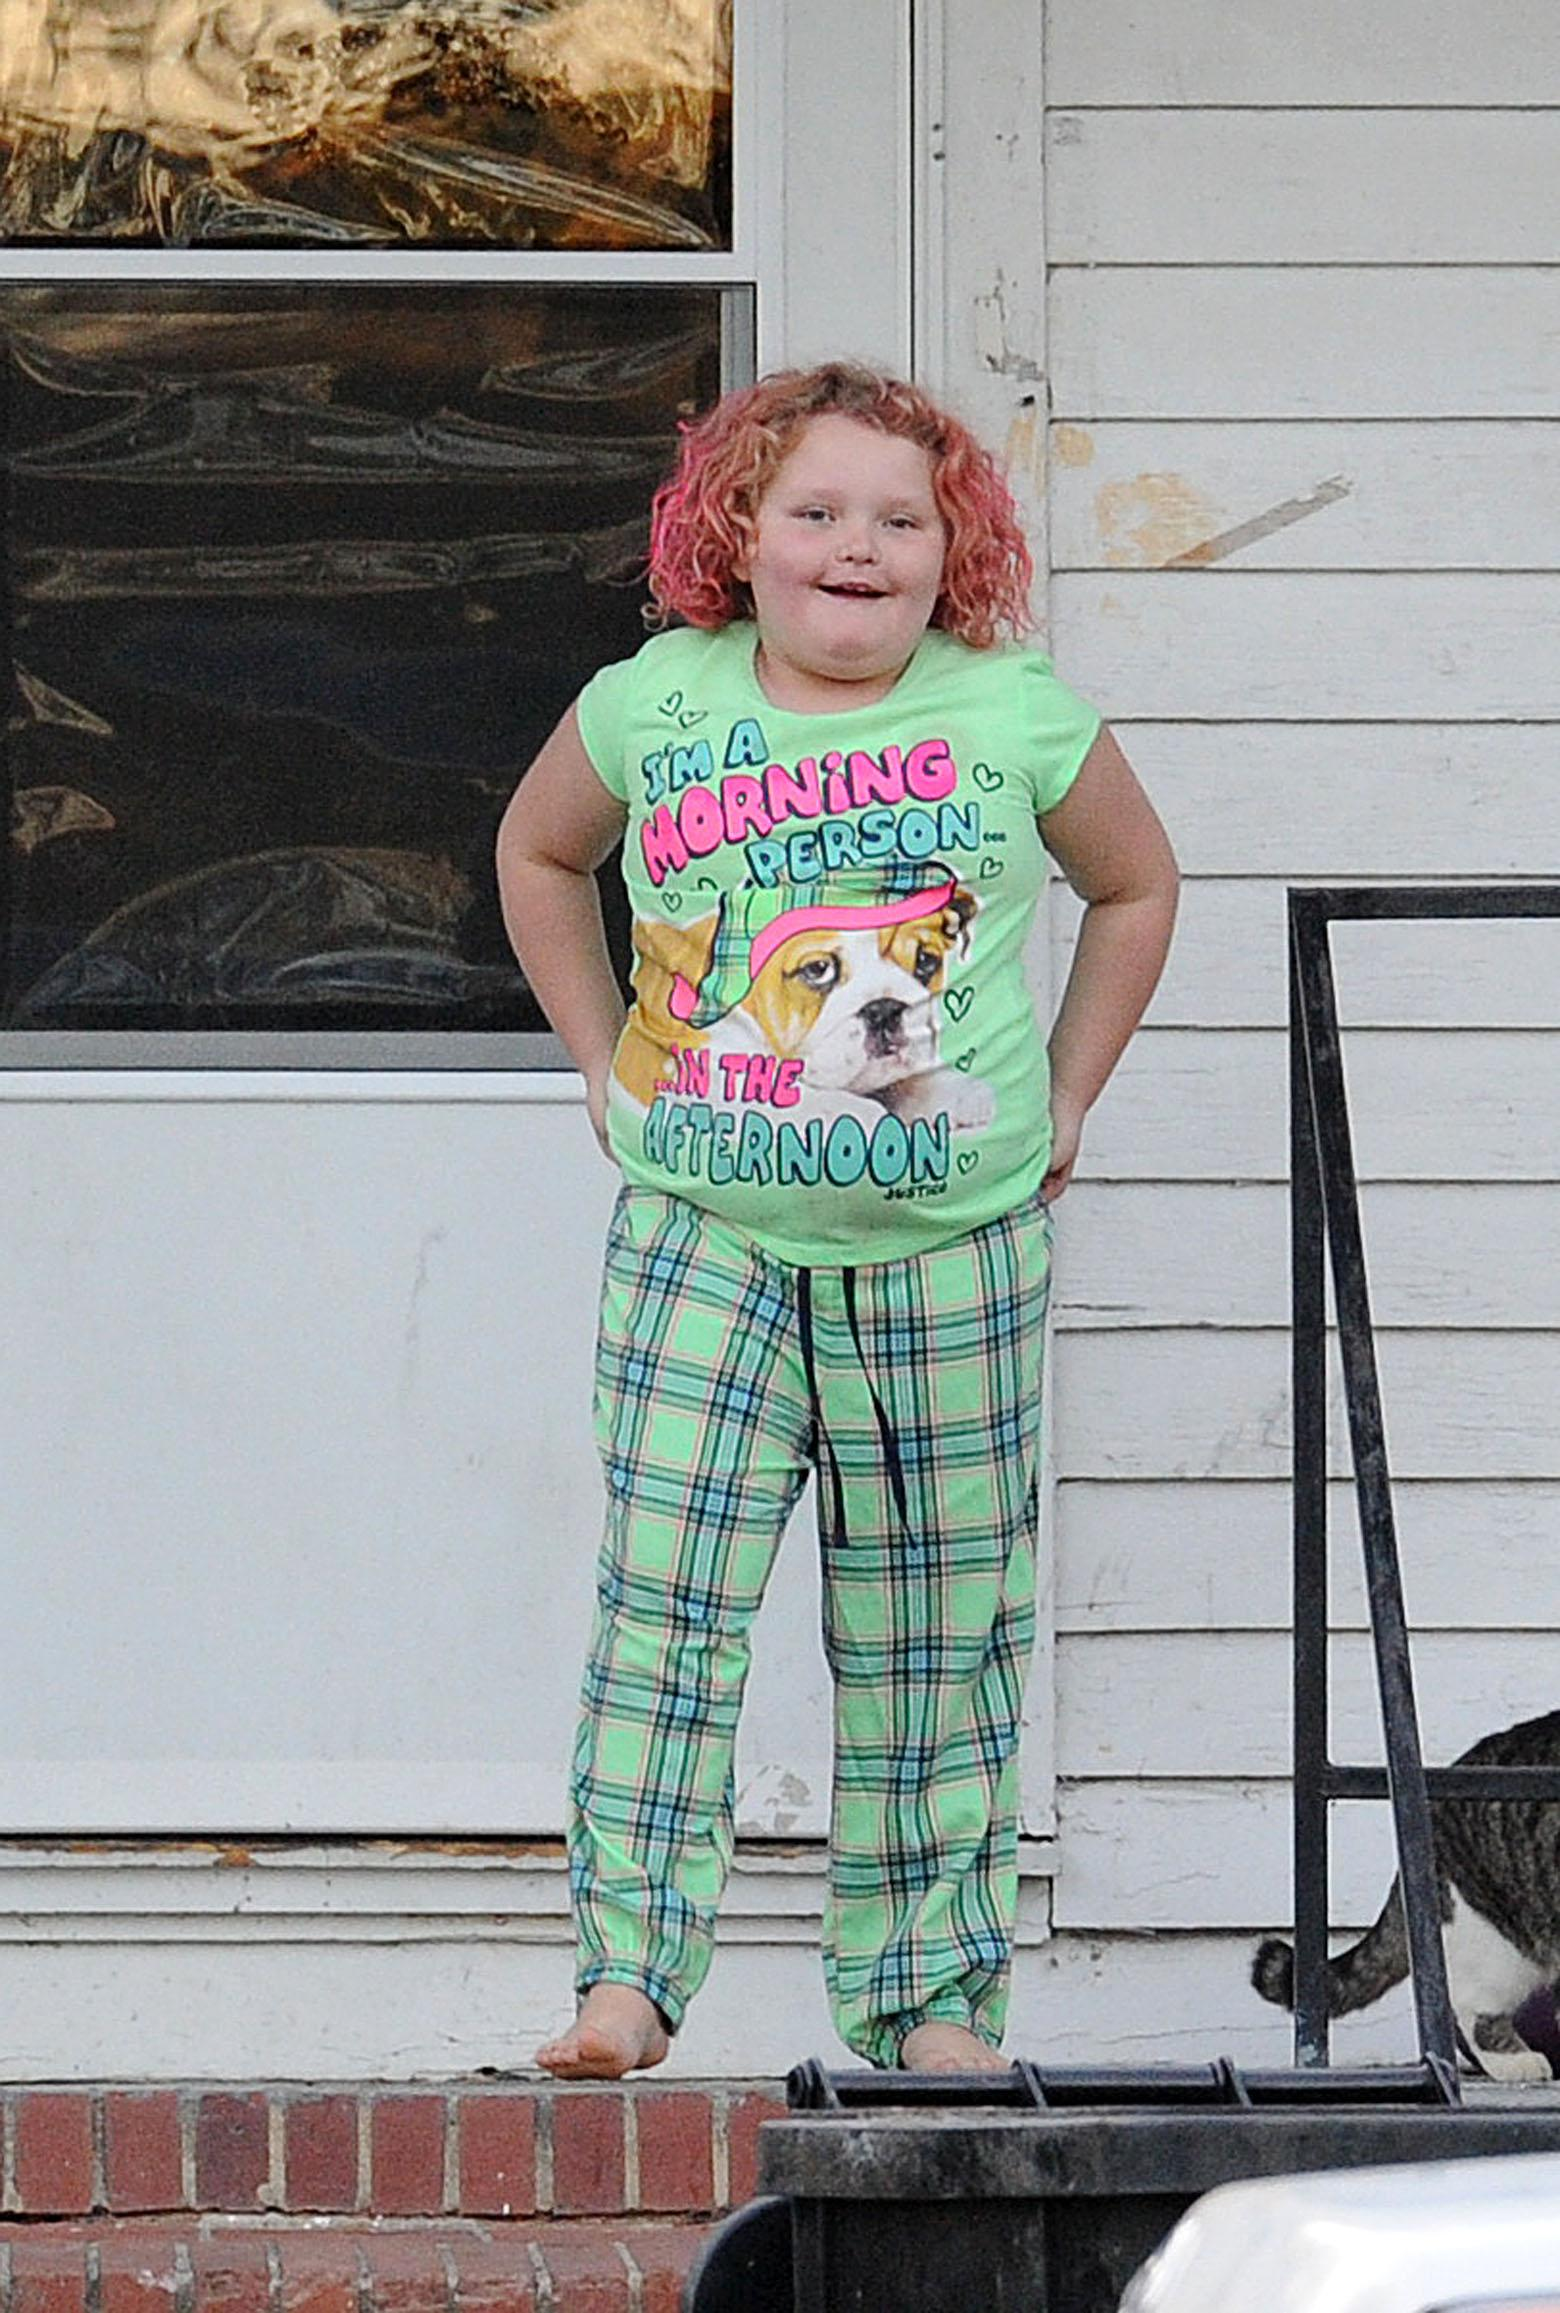 Honey Boo Boo and family seen in their front yard in GA